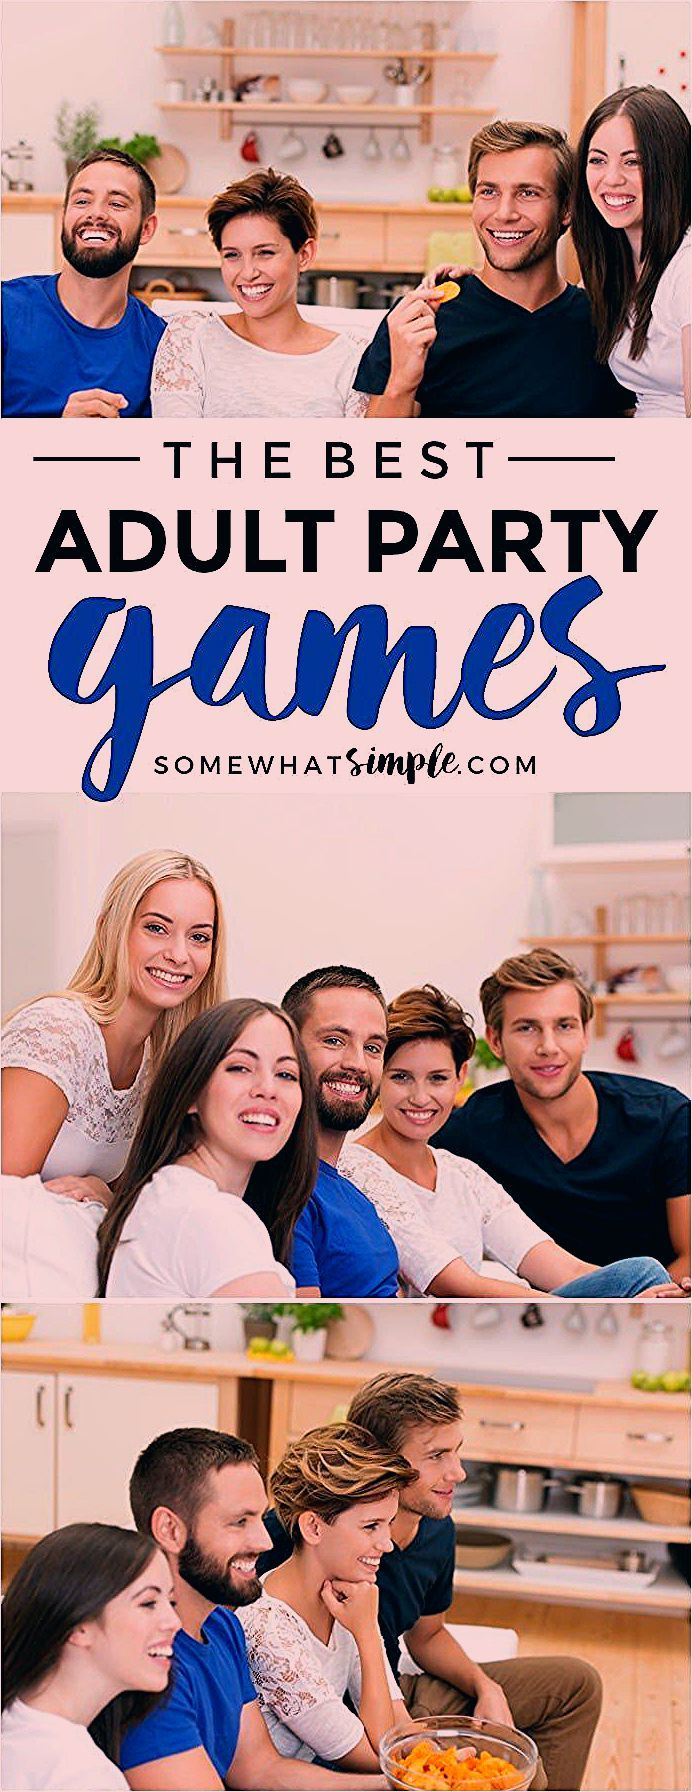 The 11 BEST Adult Party Games | Somewhat Simple